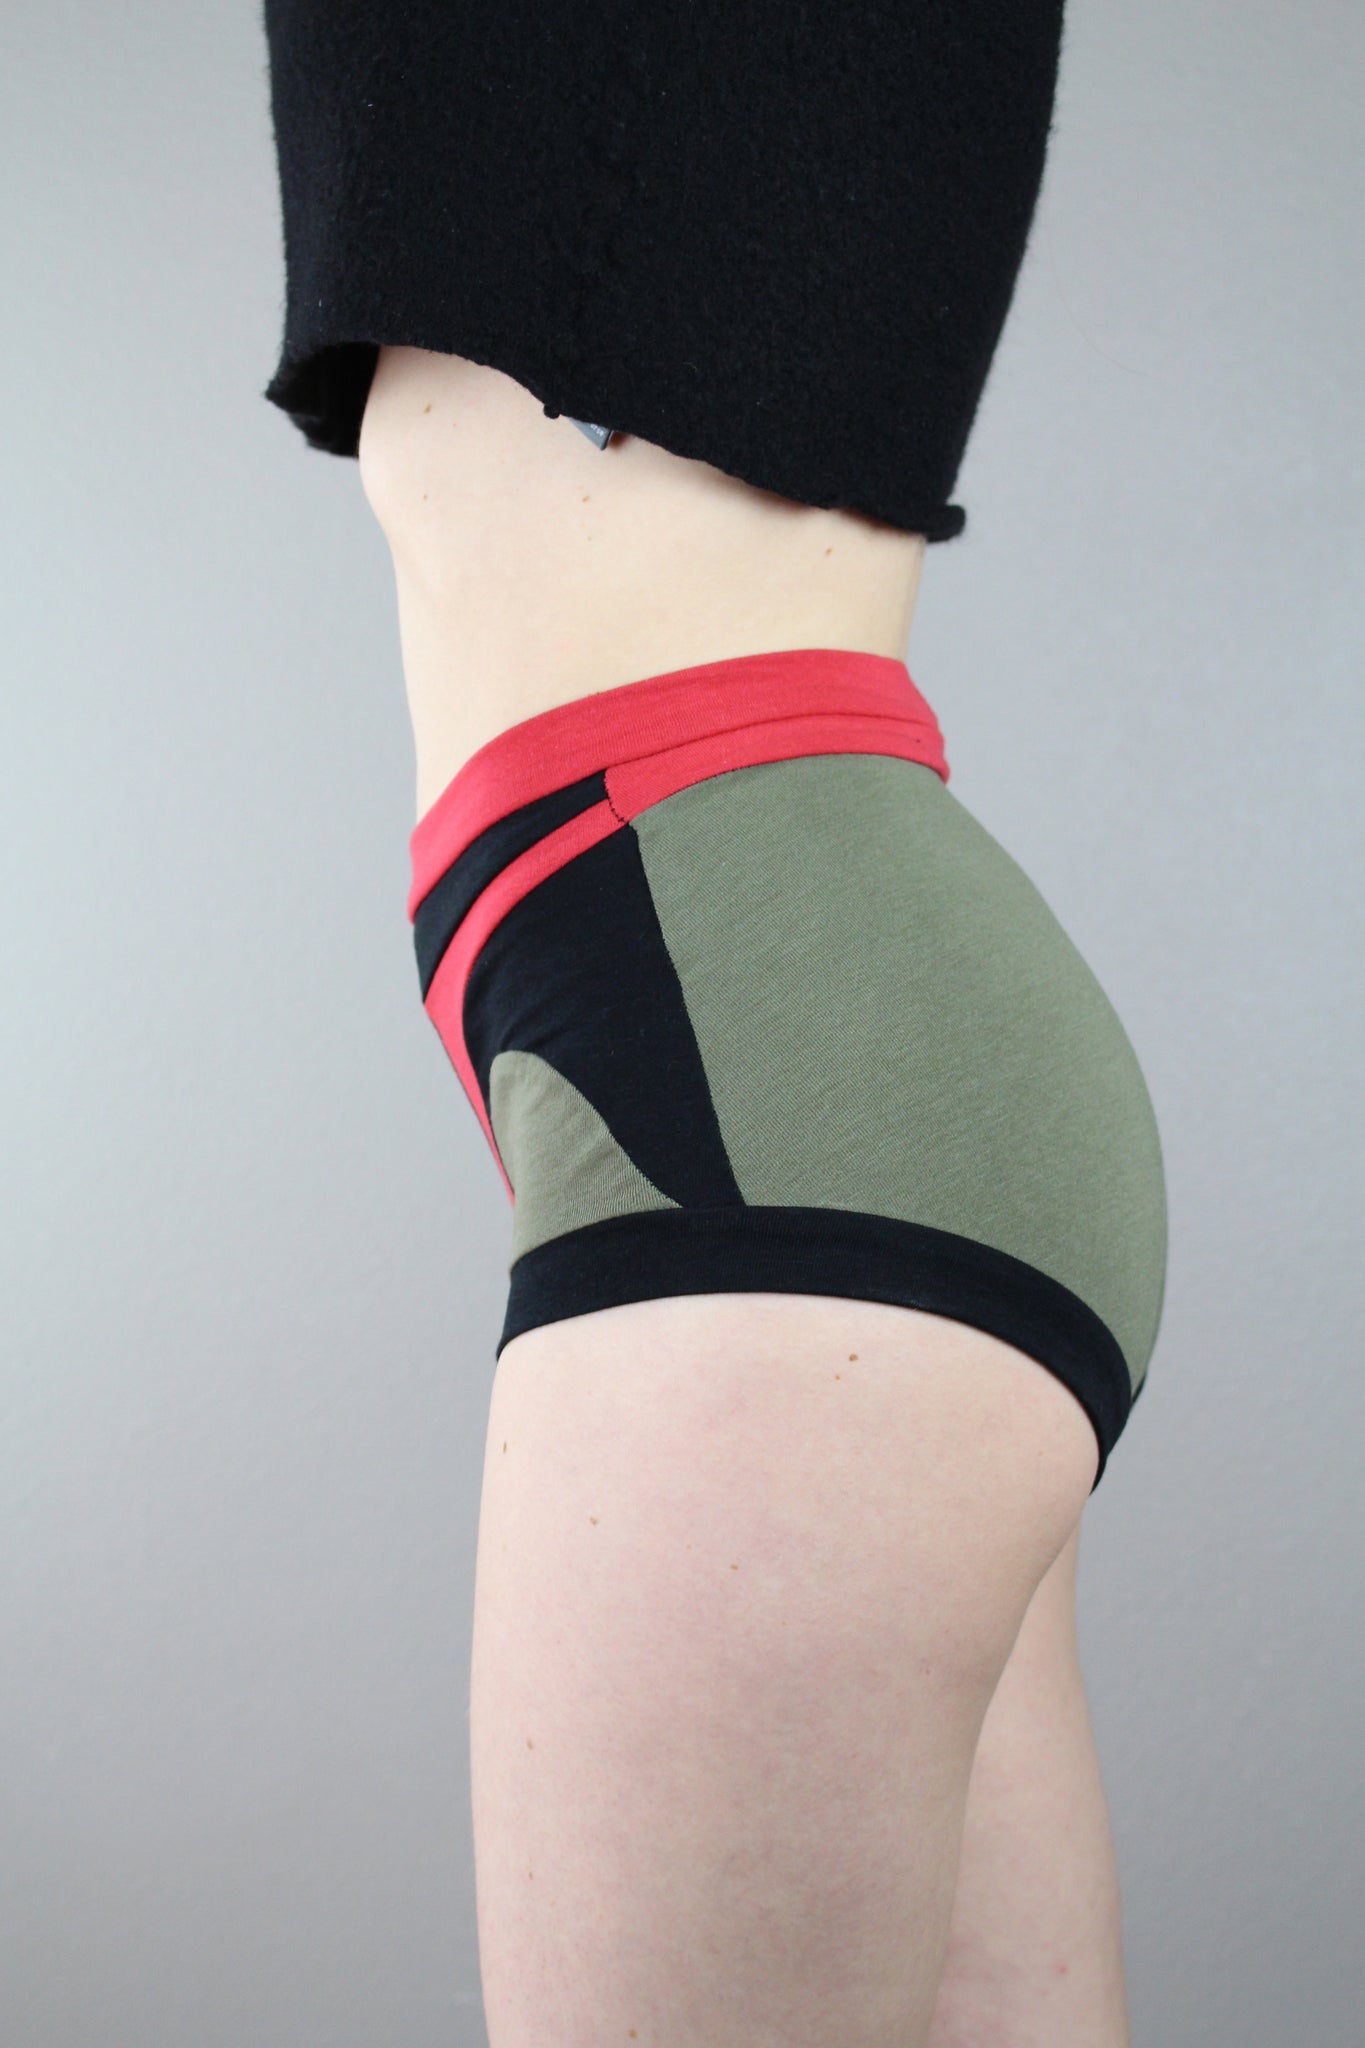 Boba Fett High Waist Panties, Pop Culture, Color Block